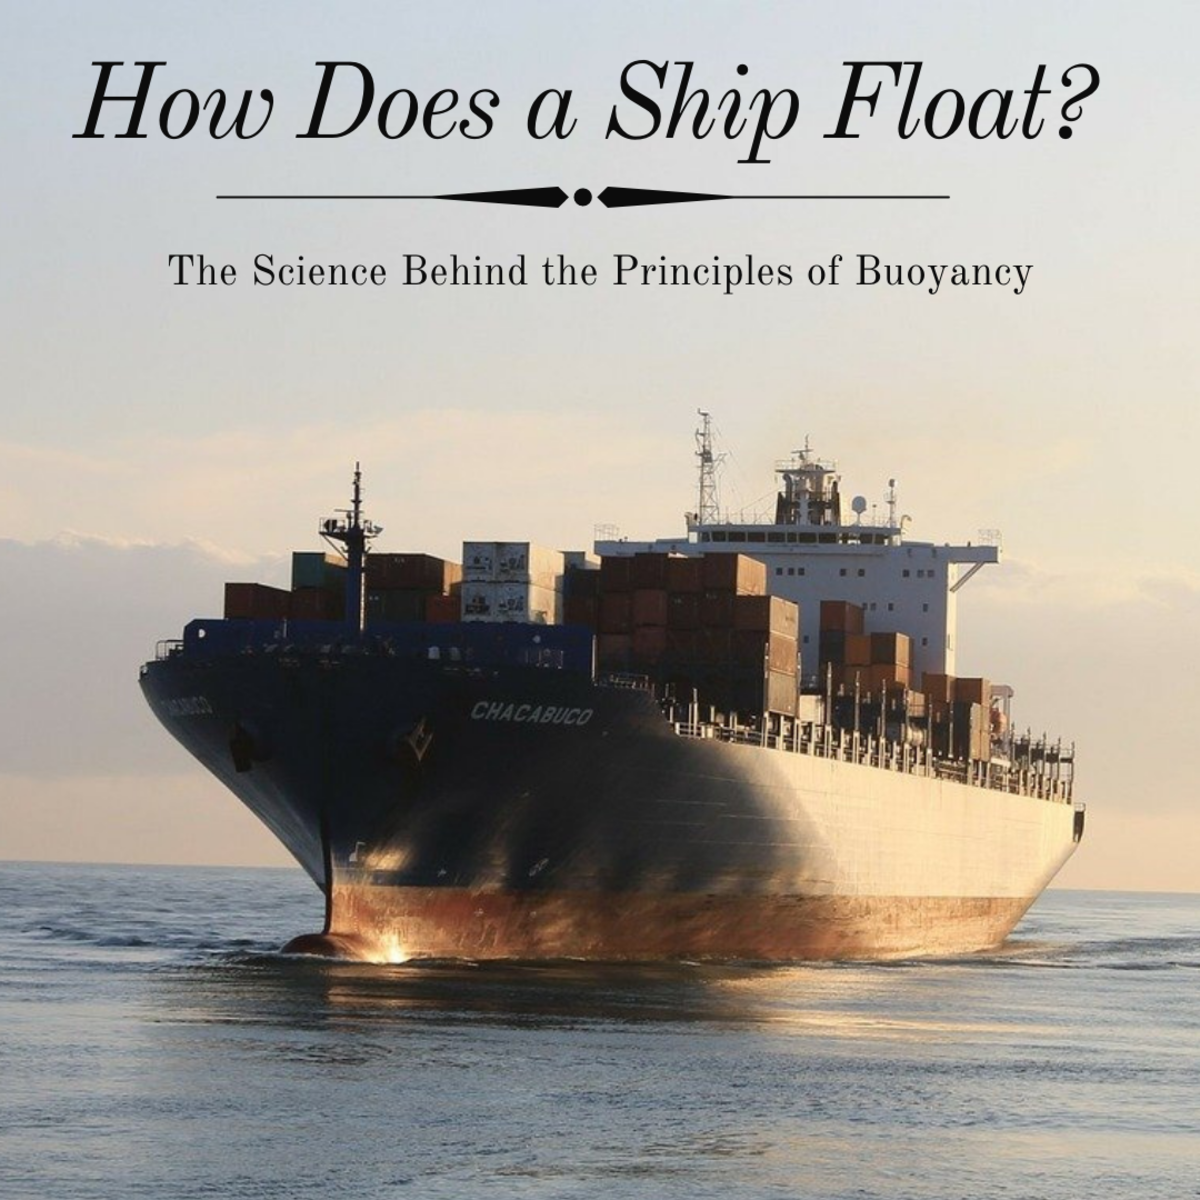 This article will break down the science behind buoyancy and what principles allow a ship to float in water.